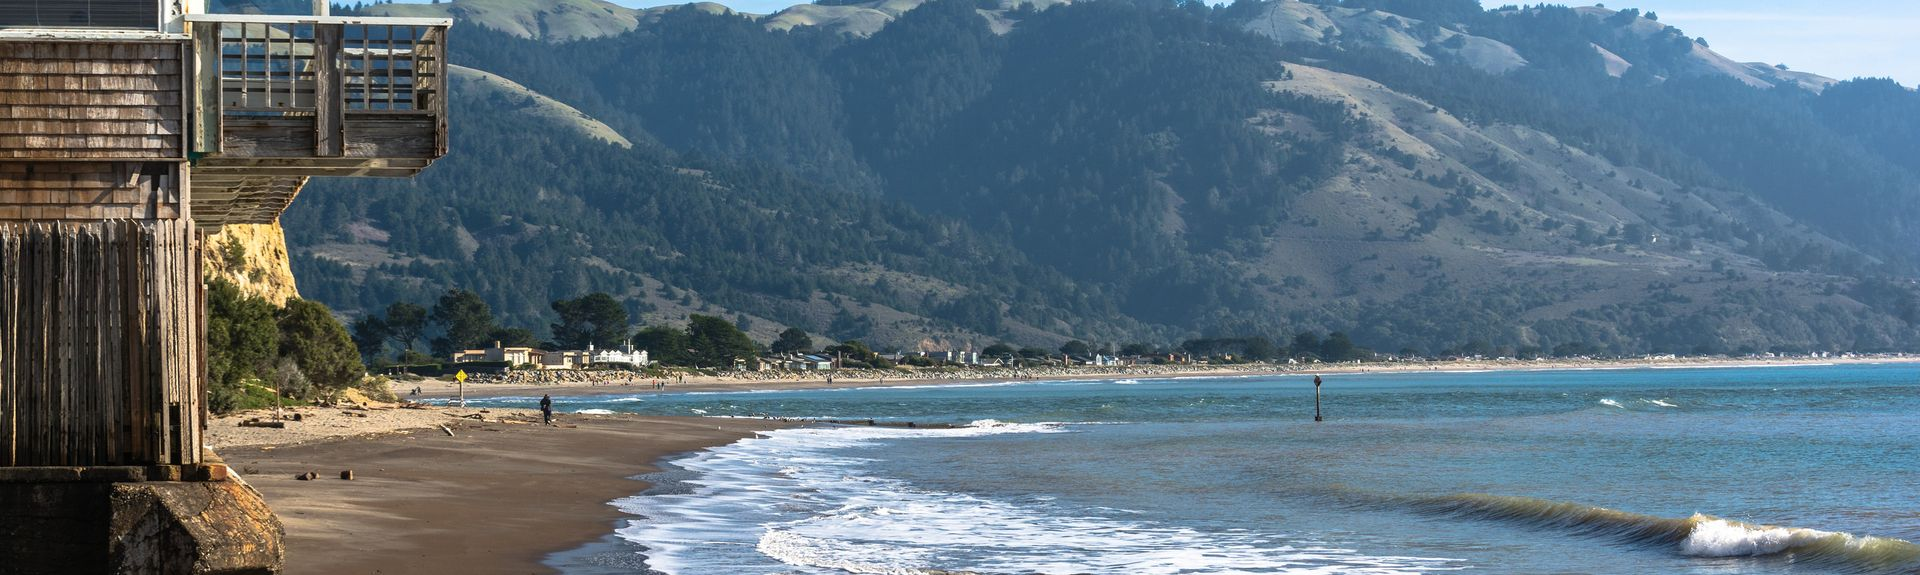 Bolinas, California, United States of America